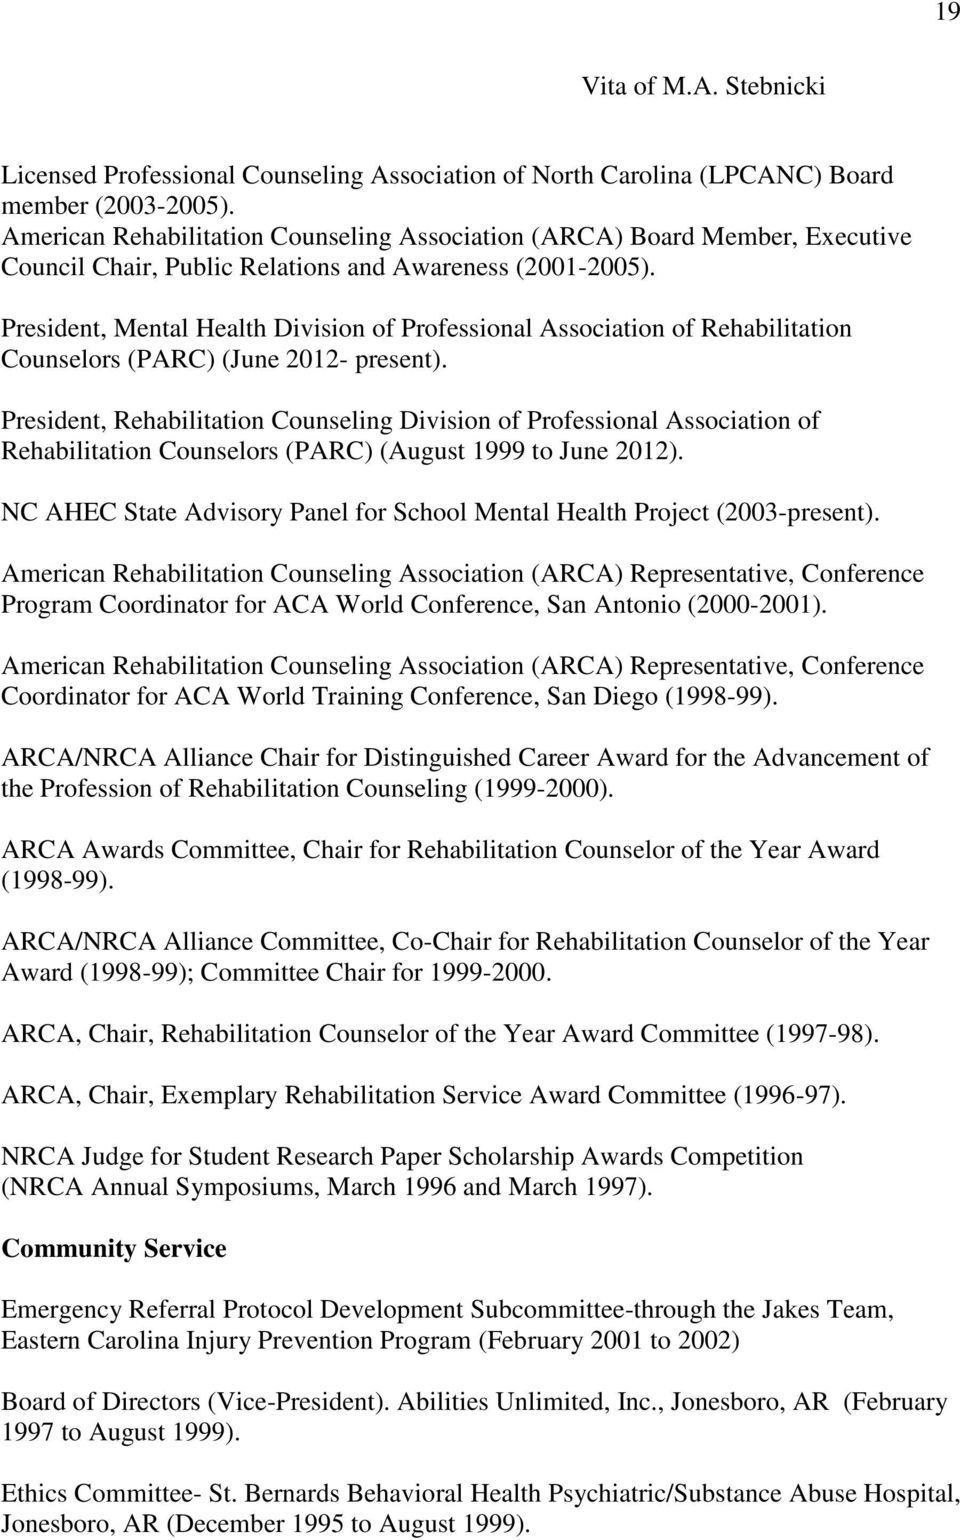 President, Mental Health Division of Professional Association of Rehabilitation Counselors (PARC) (June 2012- present).